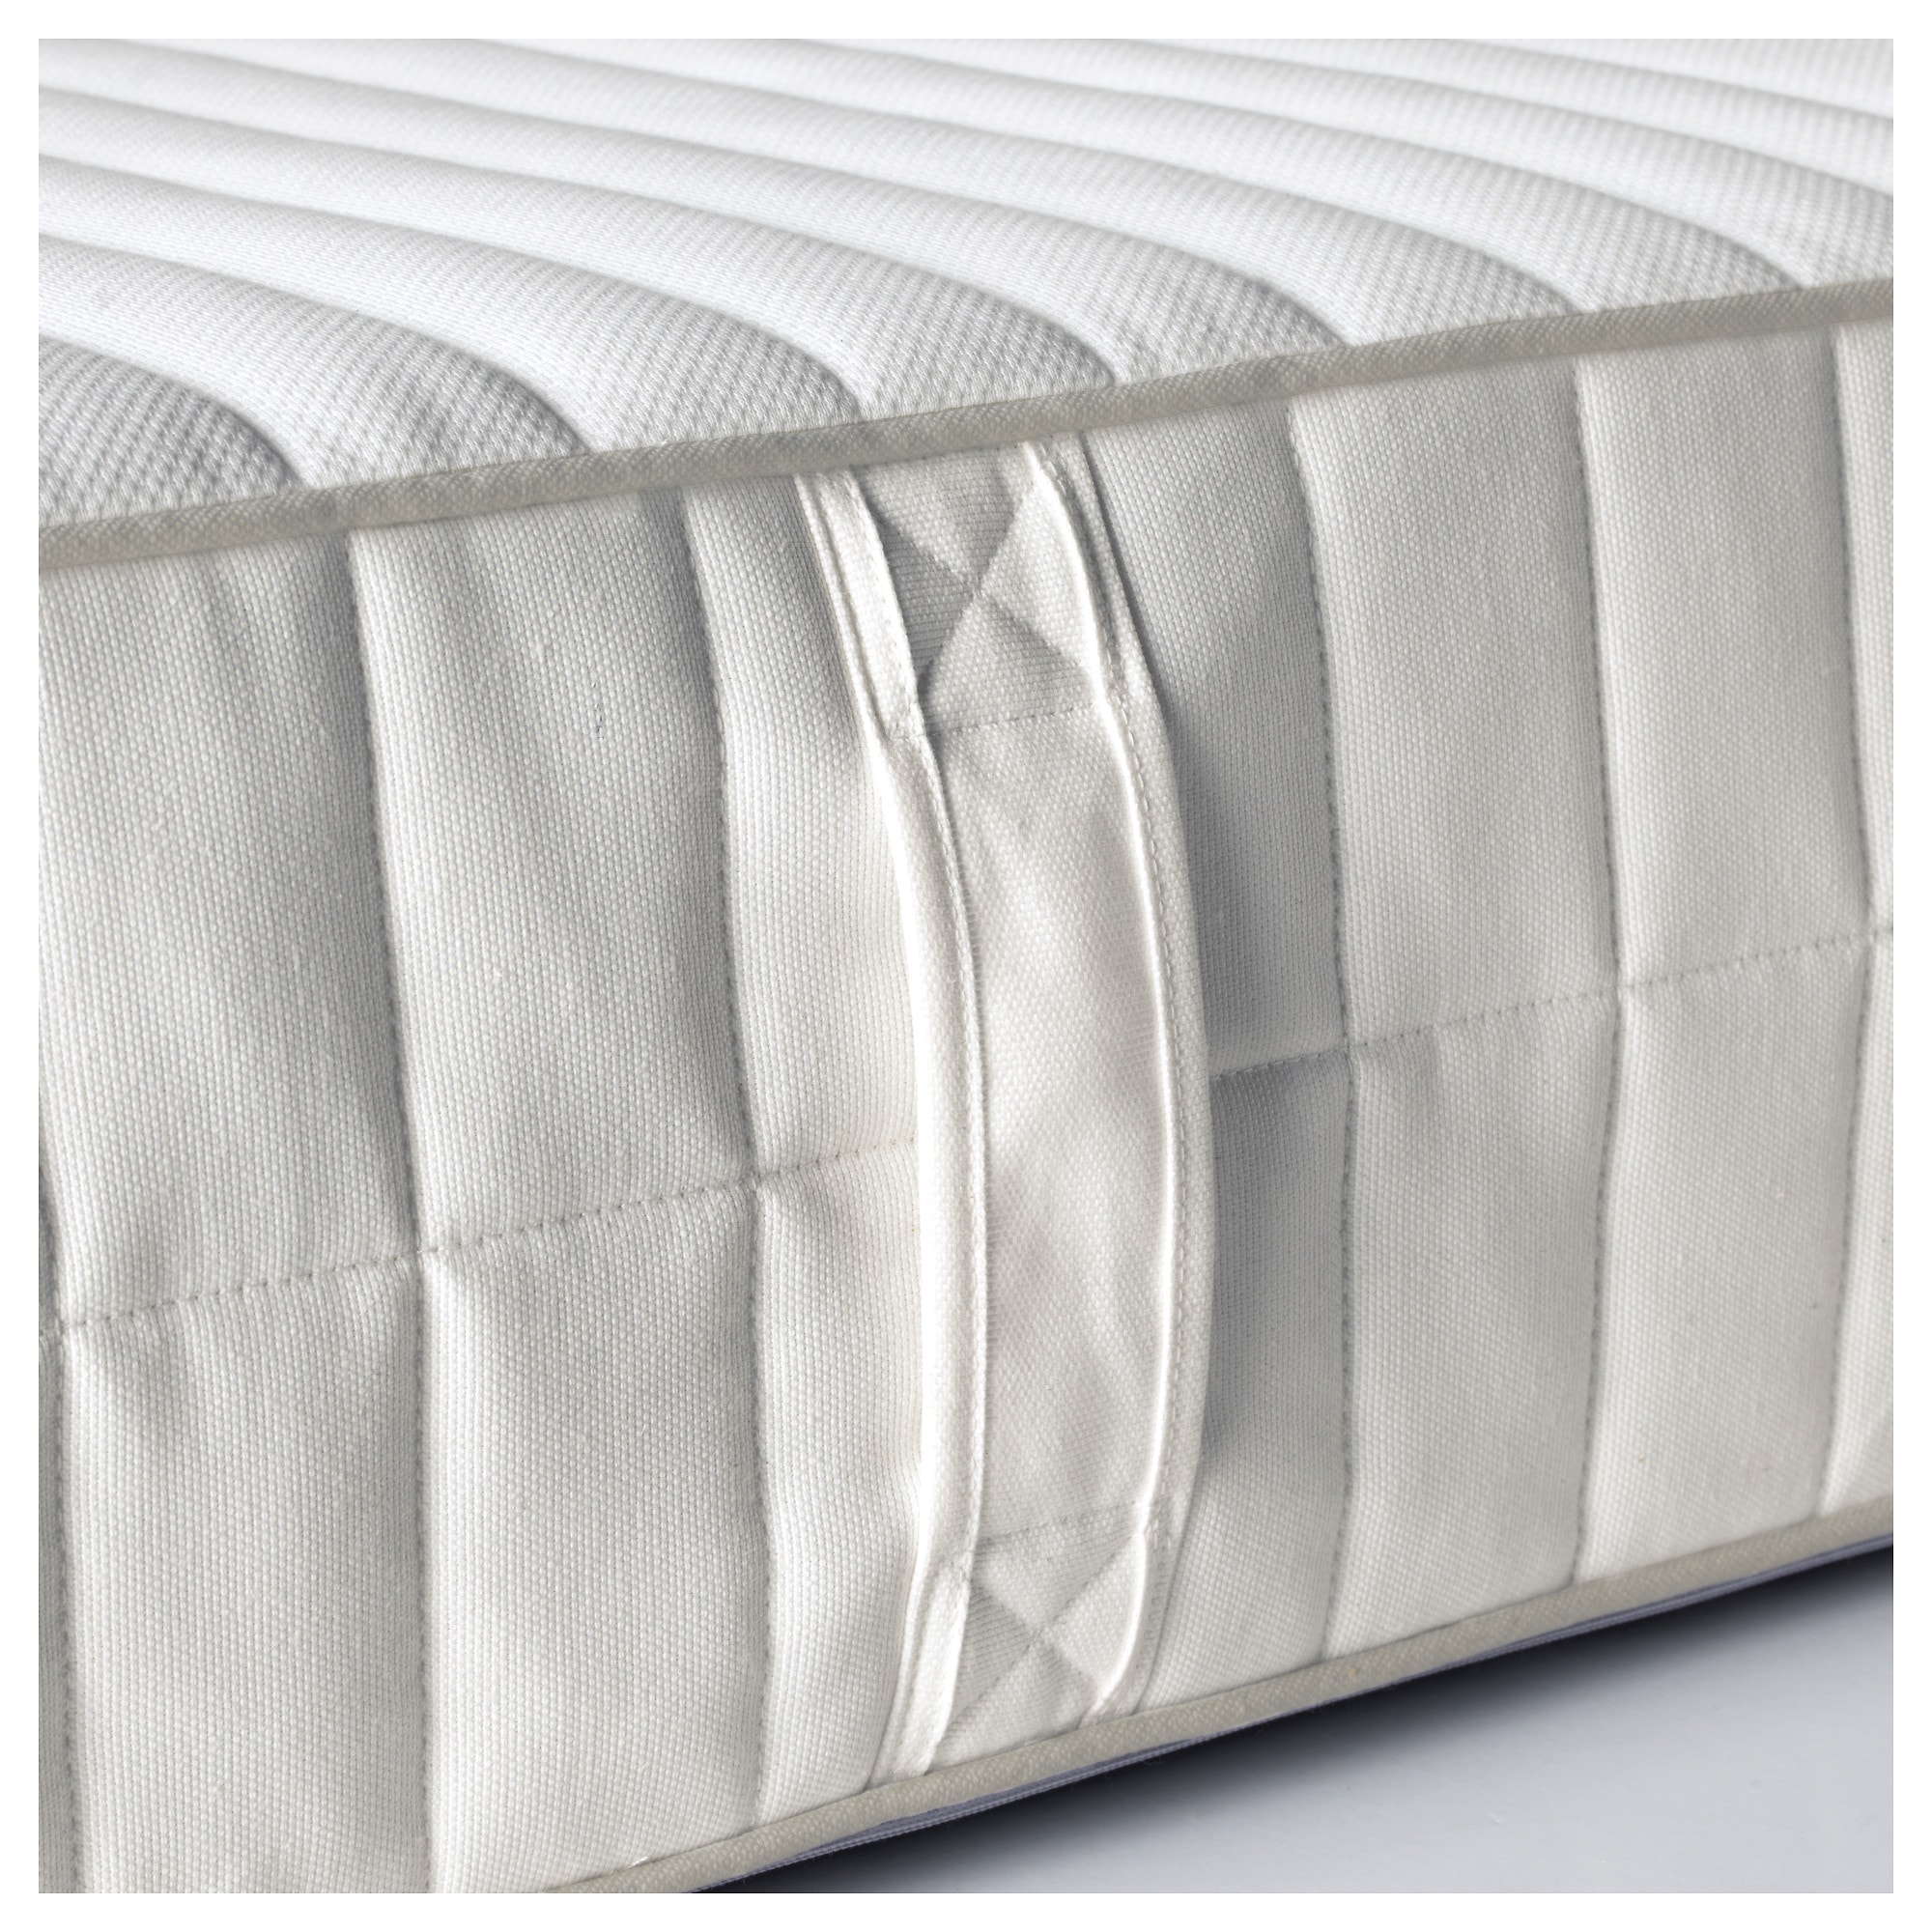 MYRBACKA Latex mattress - Full, medium firm/white - IKEA